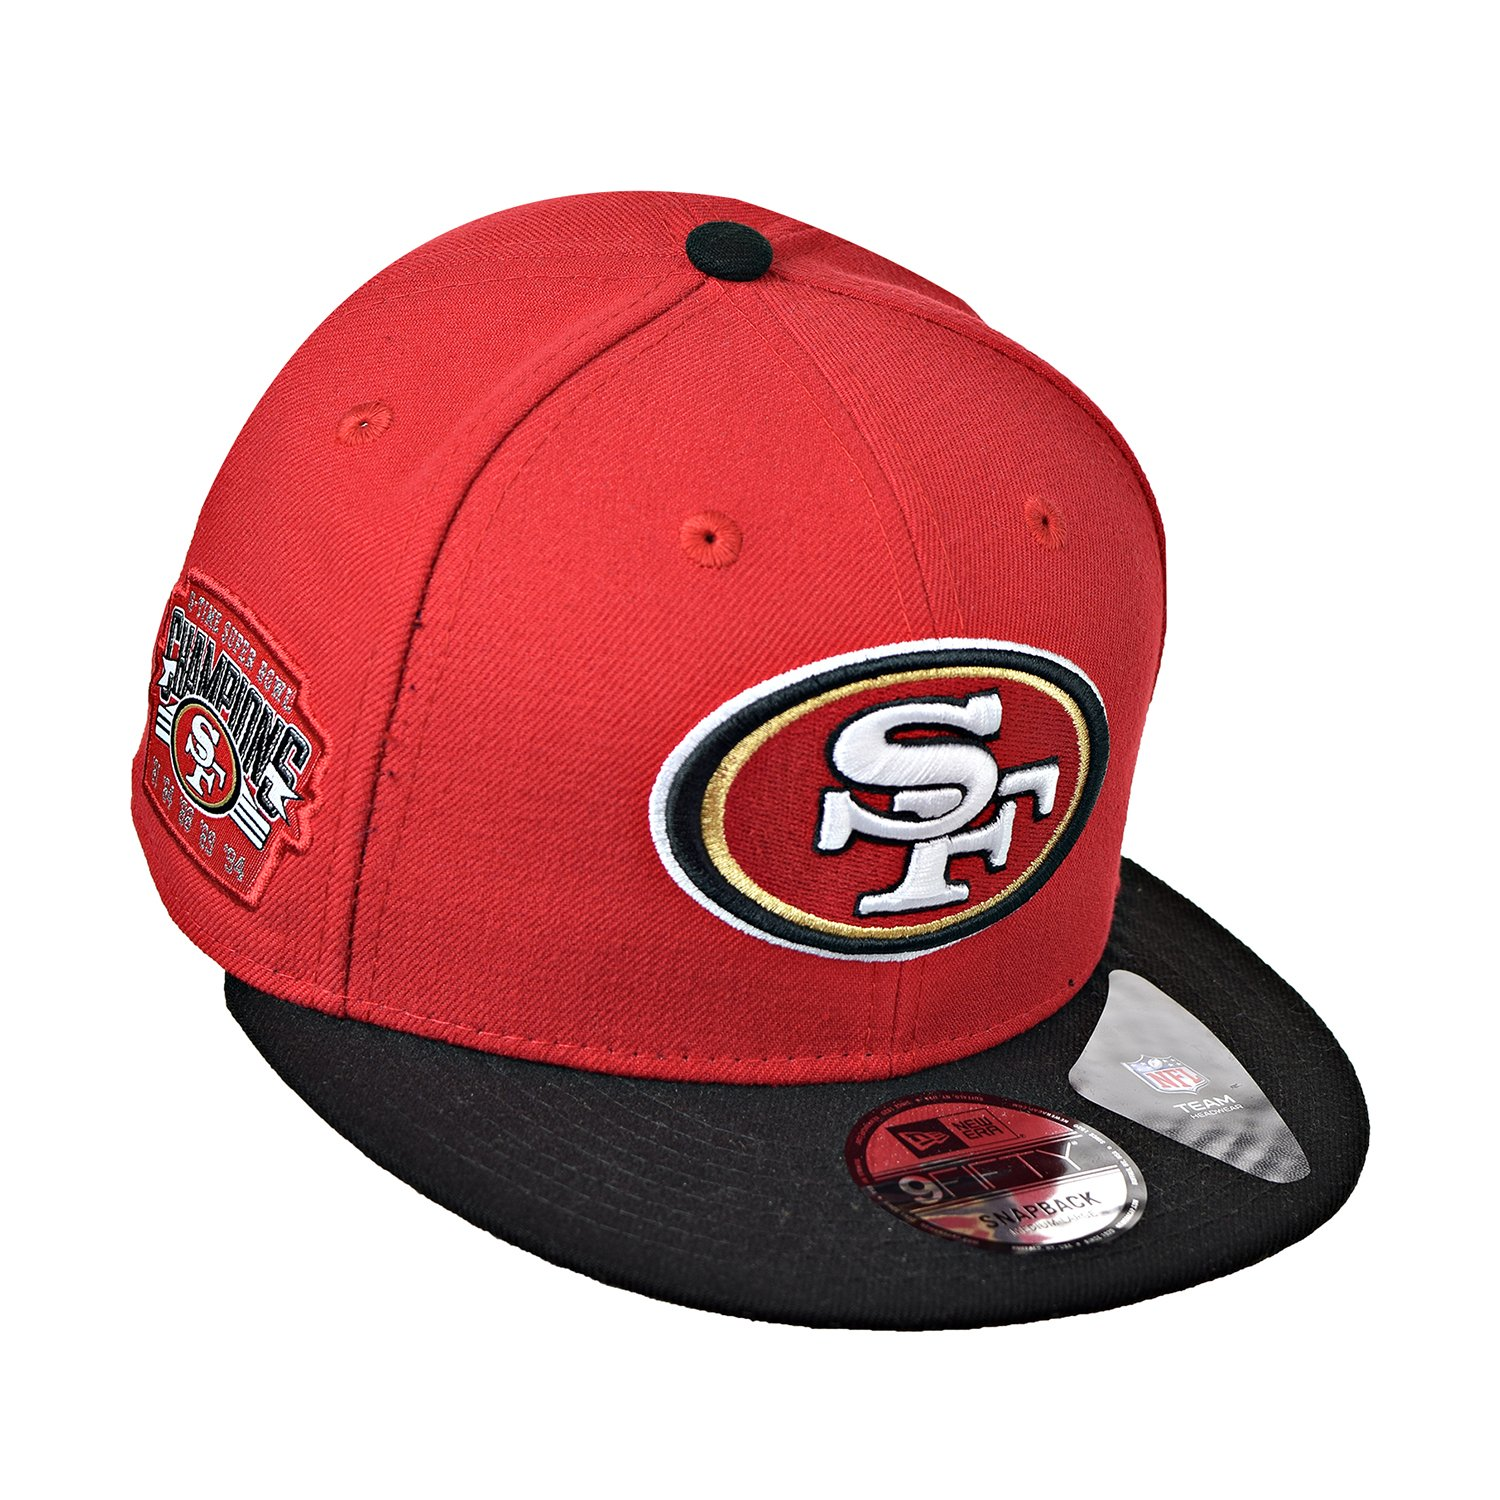 109c7ffe8cb Amazon.com  New Era San Francisco 49ers Victory Side 9FIFTY Adjustable Snapback  Hat Cap  Sports   Outdoors